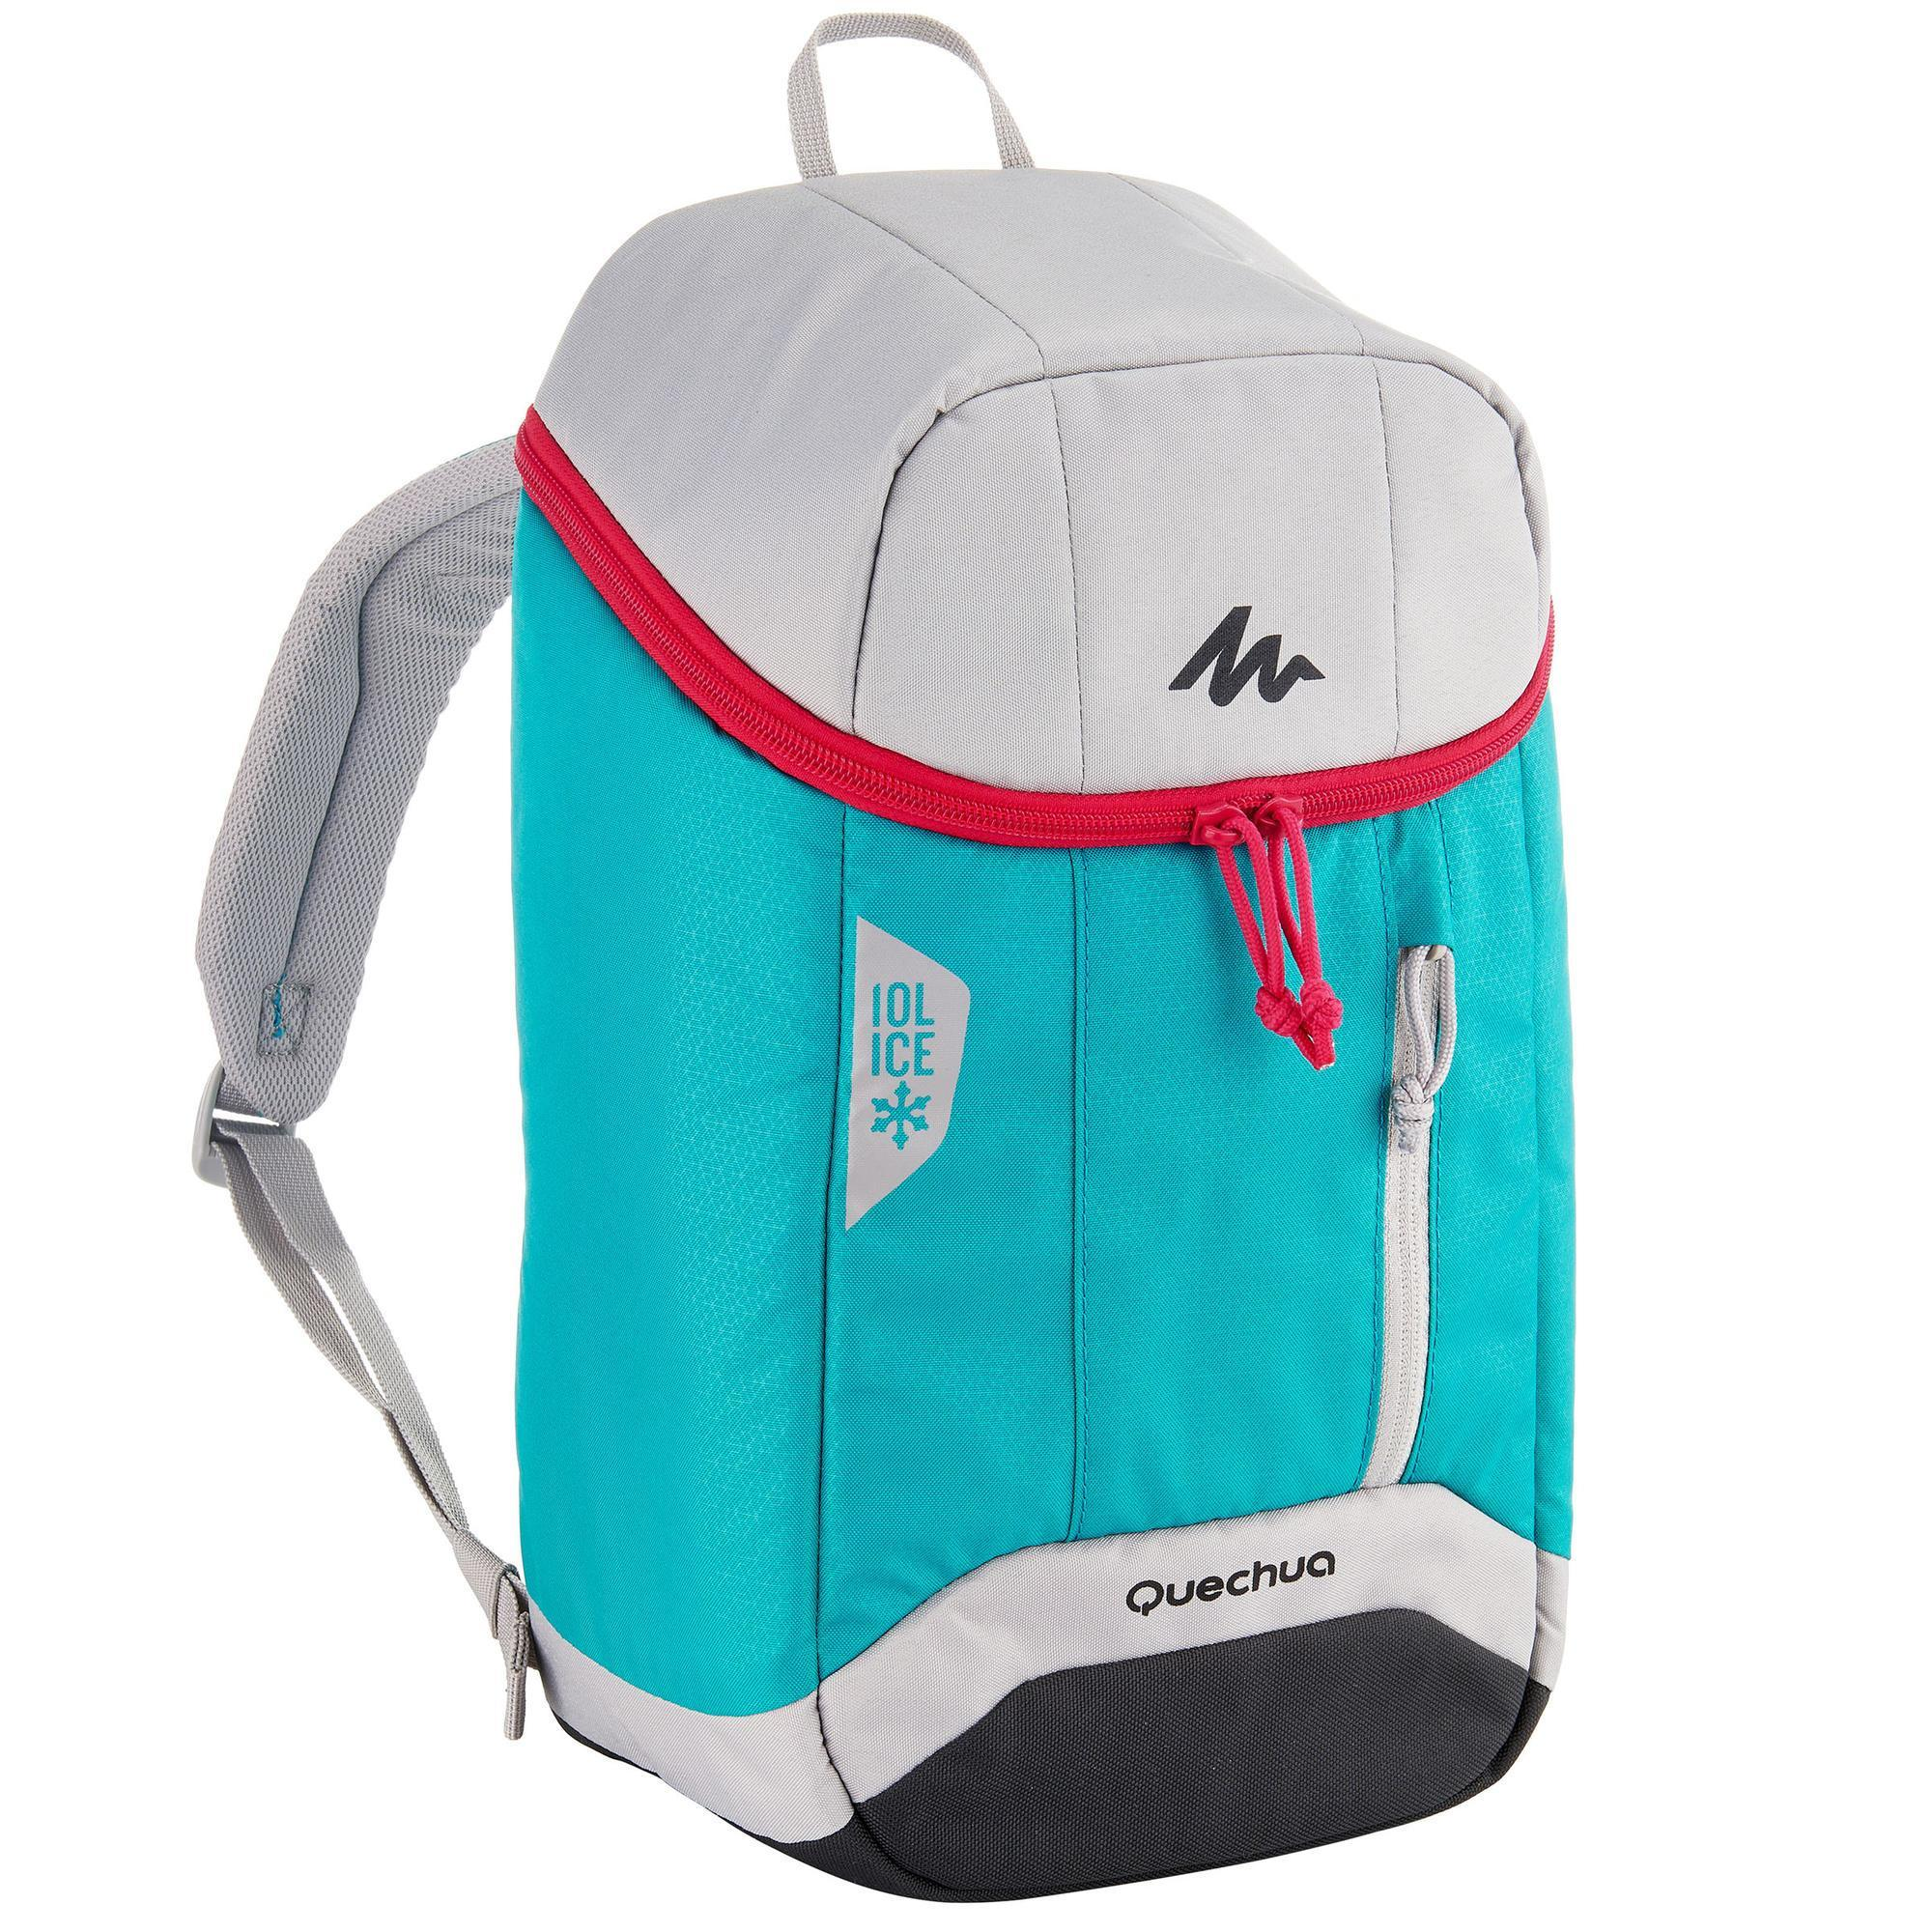 Forclaz Hiking Ice Backpack 10 L Turquoise Quechua